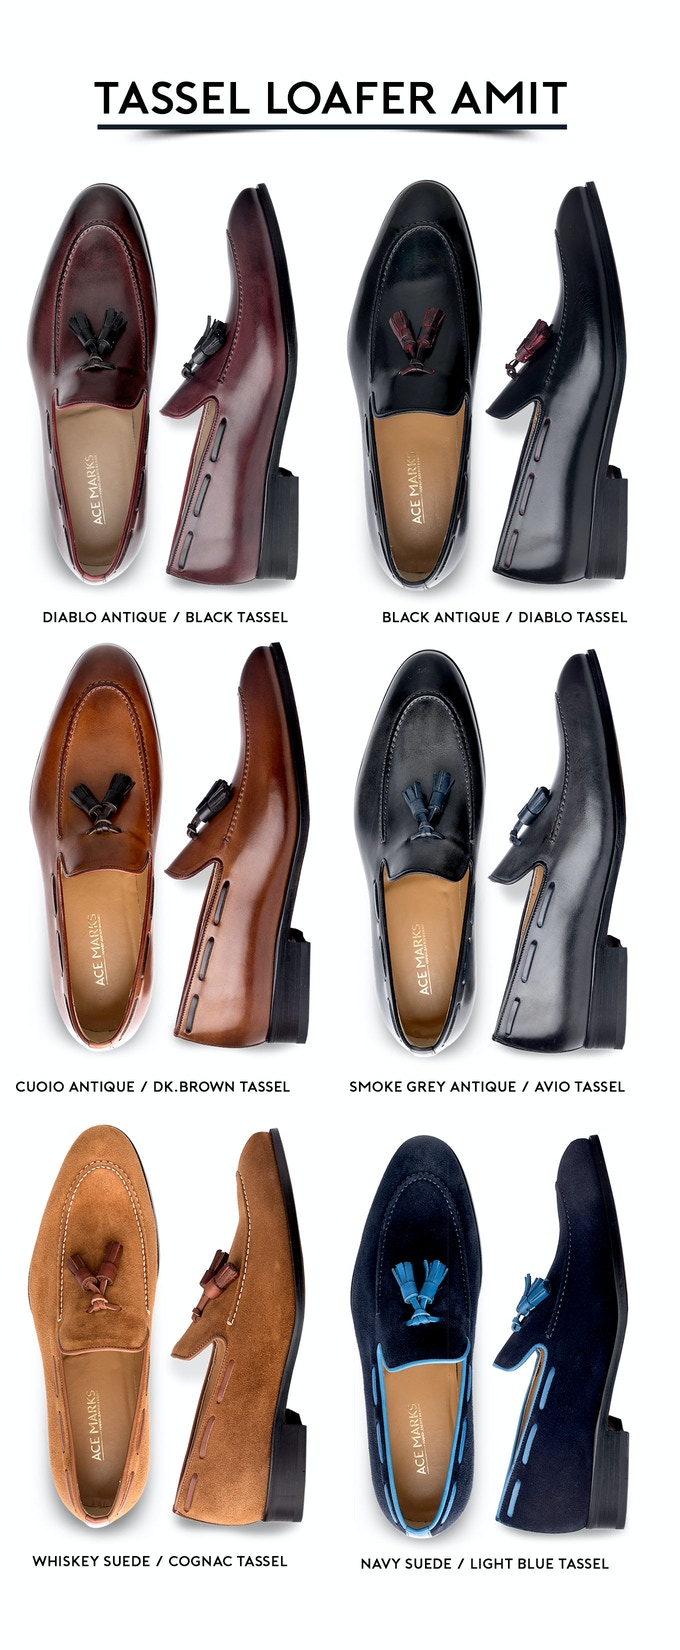 Handcrafted Dress Shoes Reinvented For The Modern Gentleman By Ace D Island Casual Zappato England Suede Black Amit Goes Great With Khakis Jeans And Right Attitude Even A Suit Rendered In Richly Oiled Leathers Furnished Traditional